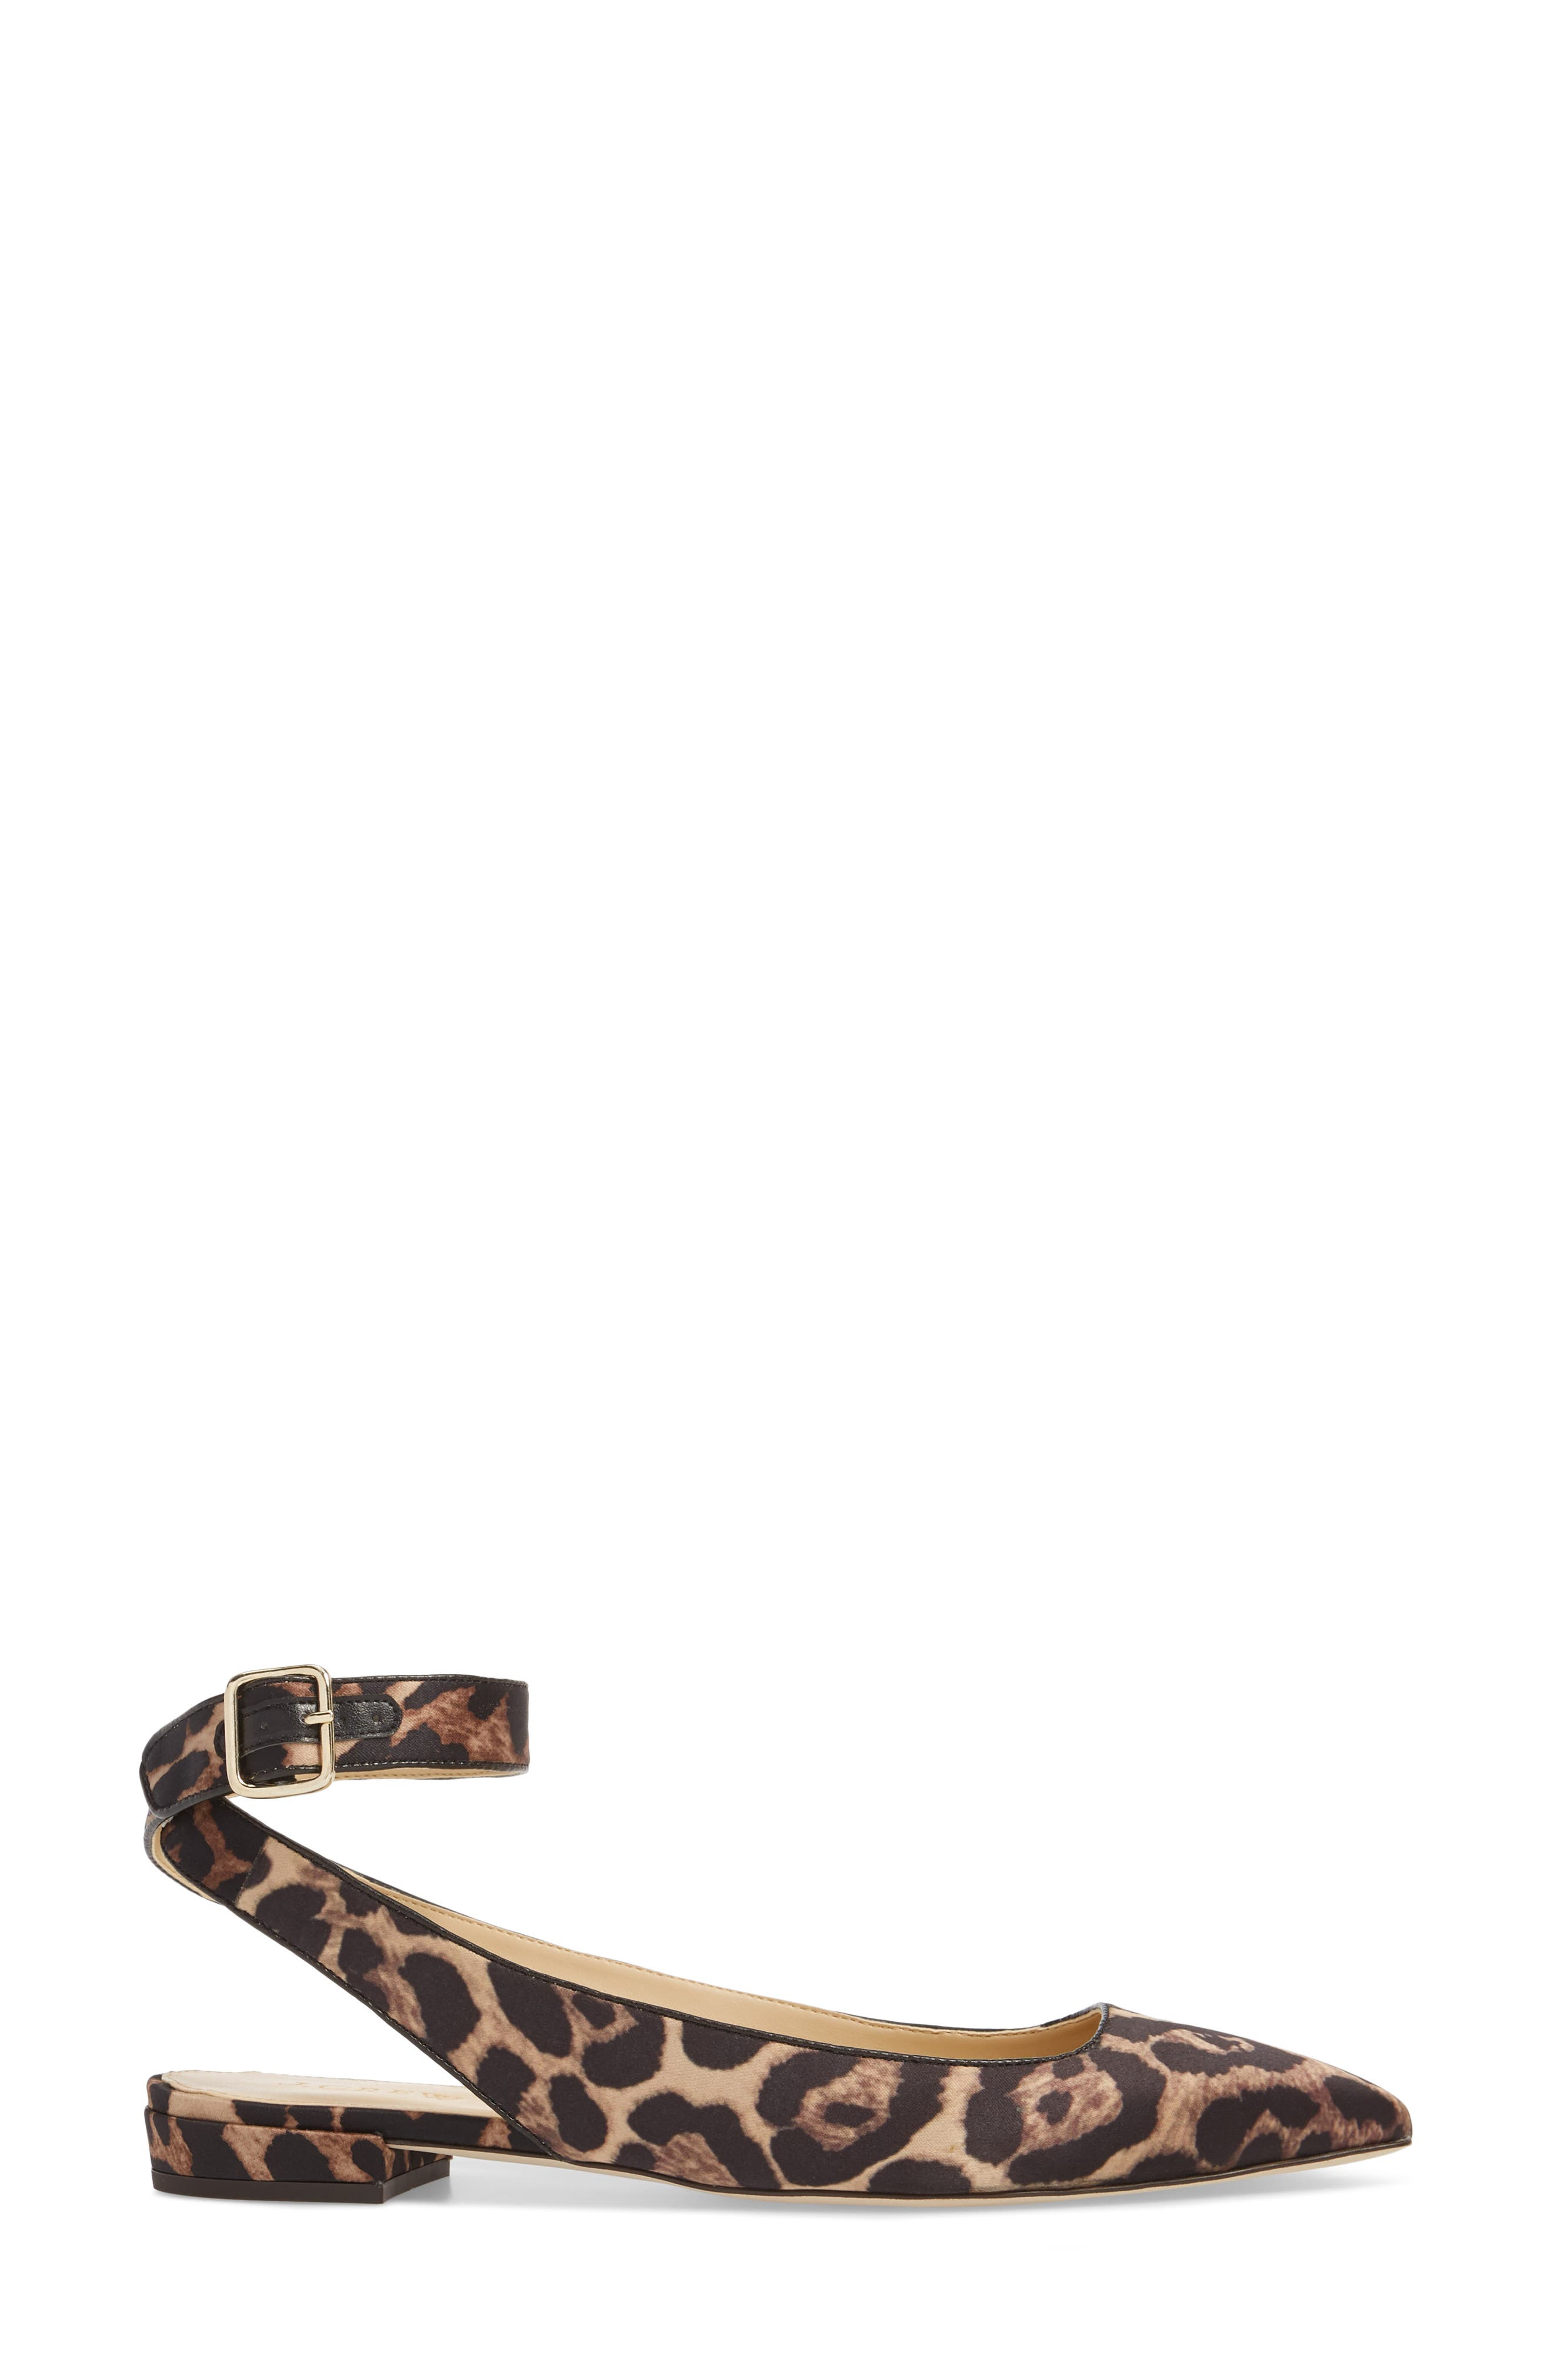 J. Crew Harlech Tabby Print Ankle Strap Flat,                             Alternate thumbnail 3, color,